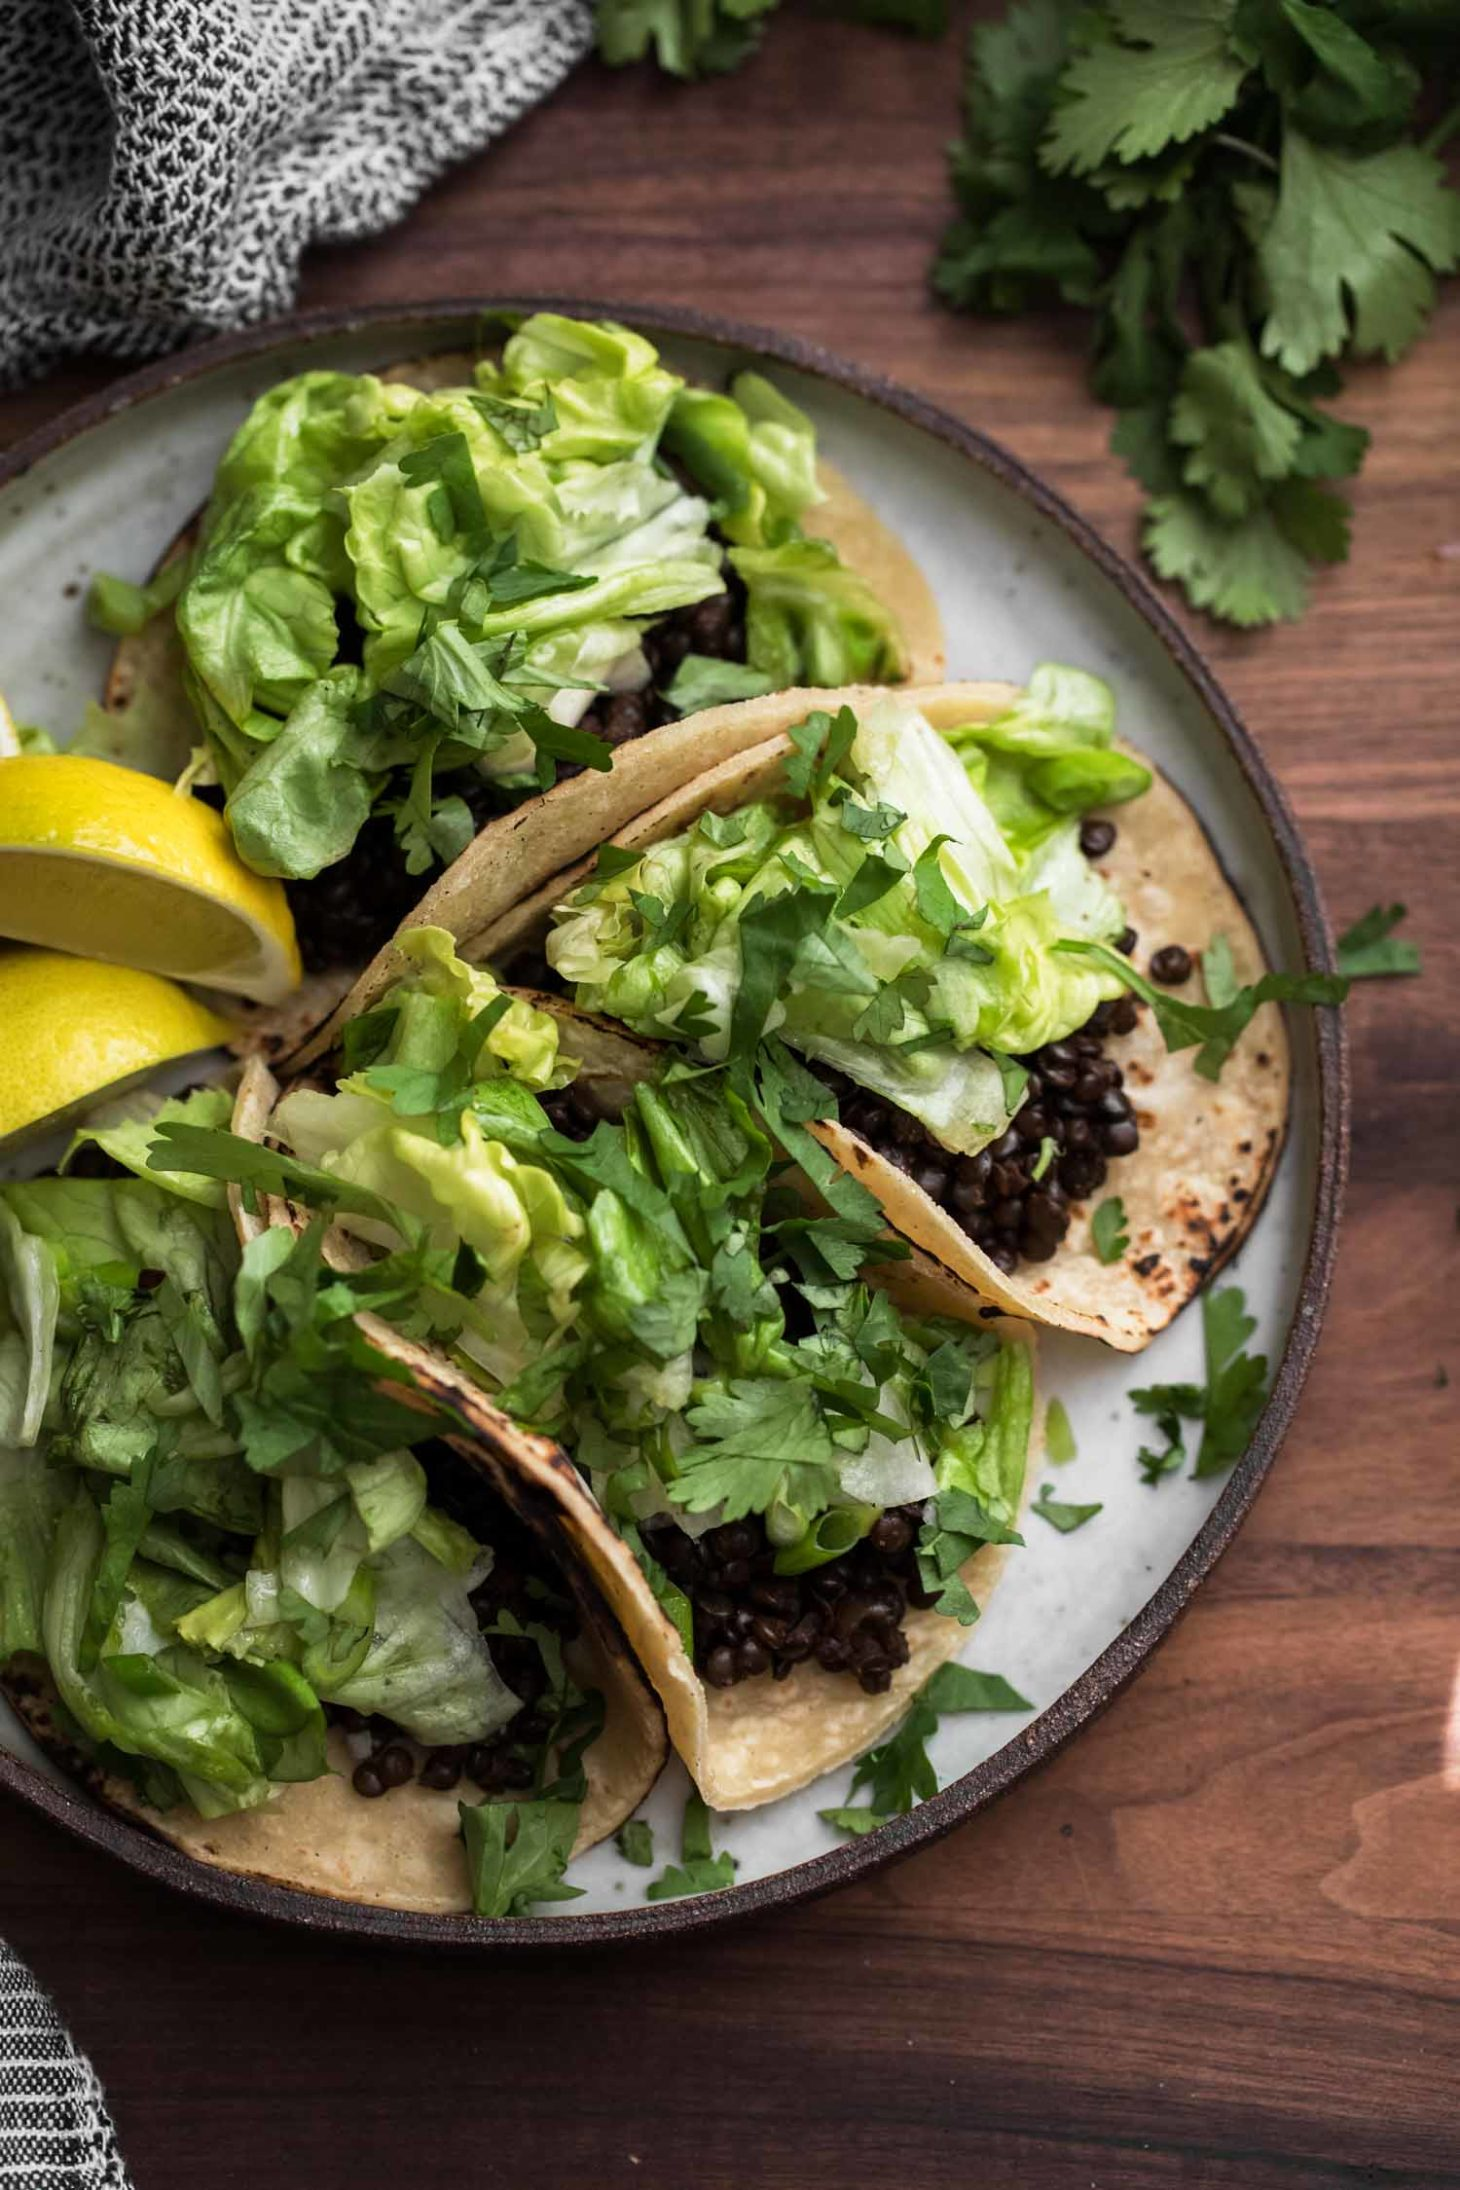 Overhead shot of vegan tacos stuffed with chipotle lentils and a lightly dressed butter lettuce salad.